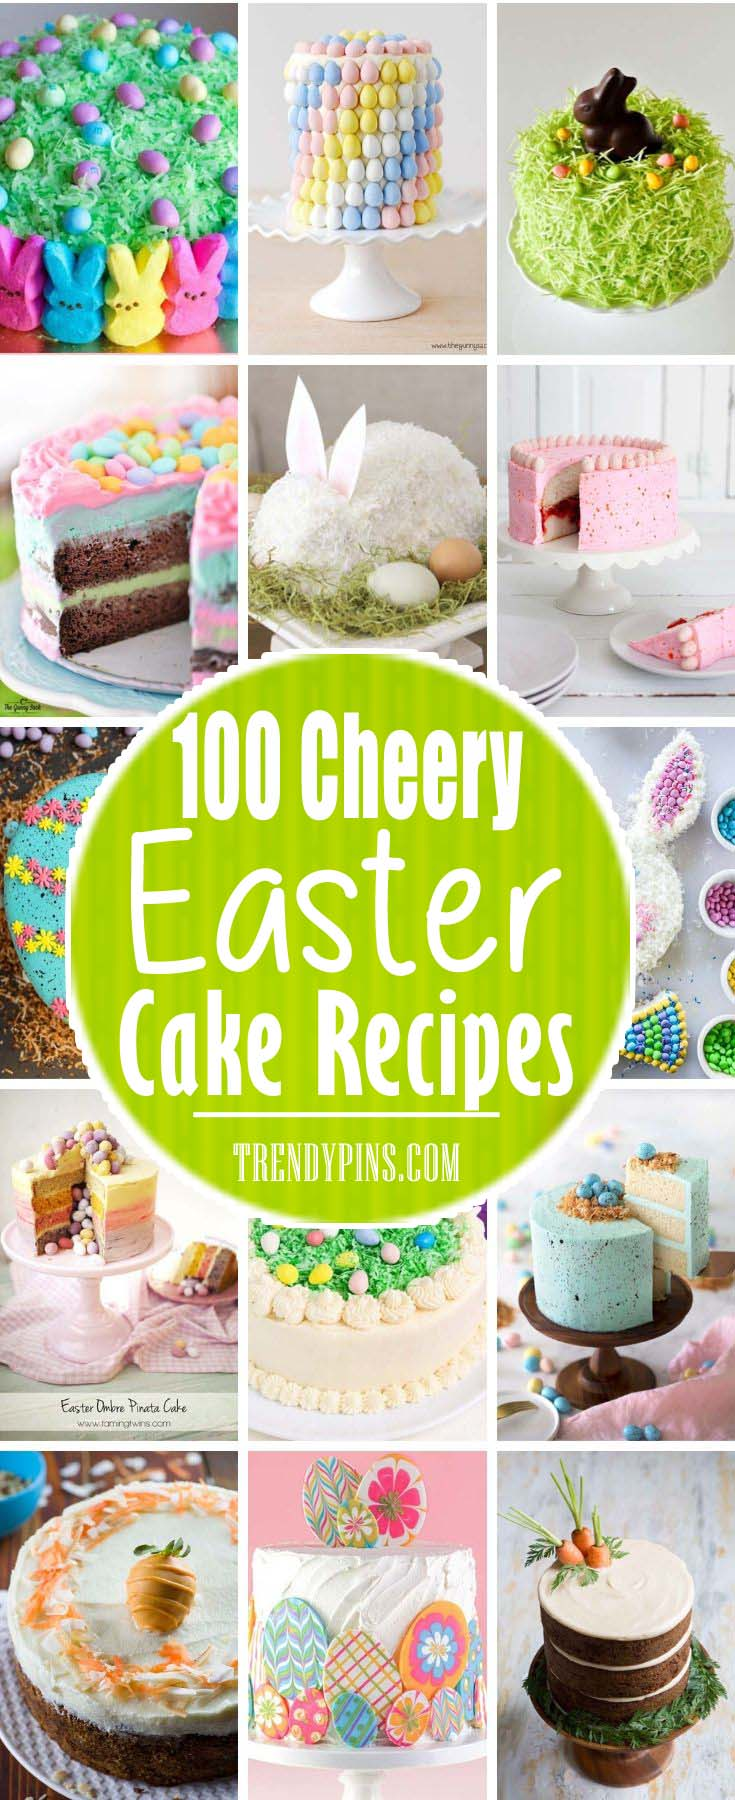 Easter cakes are more than just a delicious snack. They can be a delicious snack that is also a decoration for your holiday party. They are made from delicious ingredients and bright beautiful colors. Check out these Easter cake ideas. #Easter #cakes #recipes #trendypins